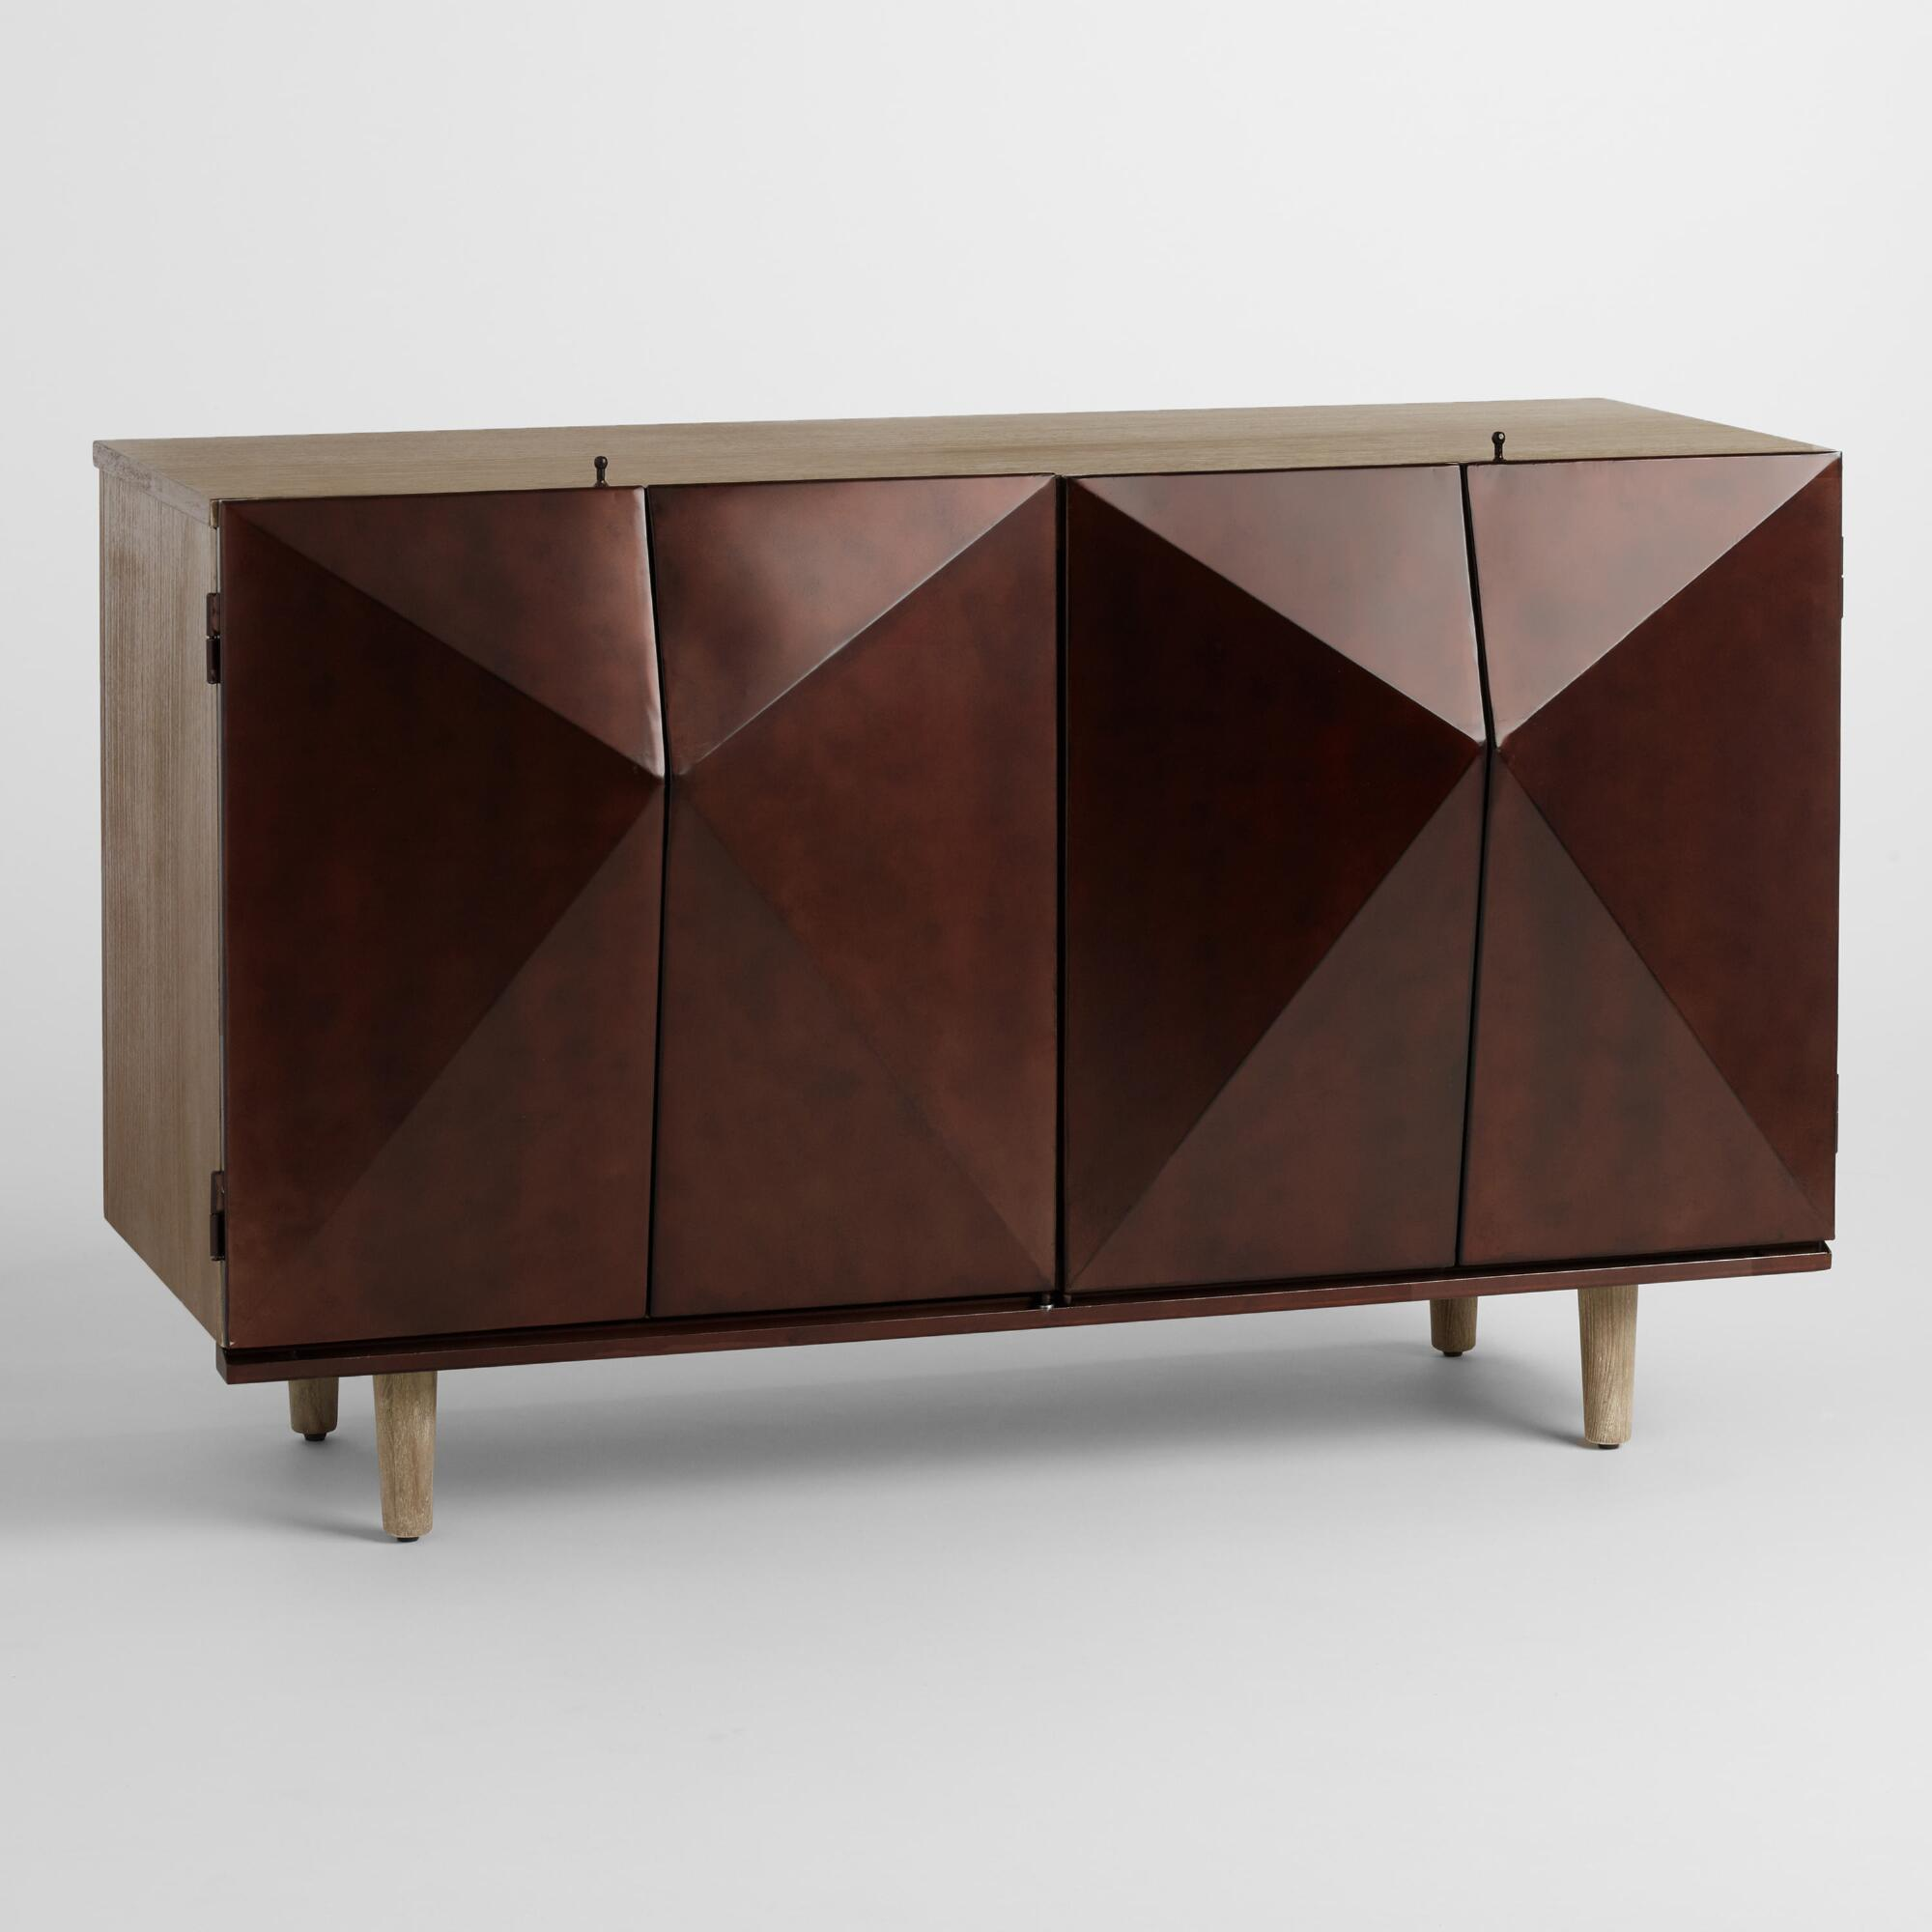 Kitchen craft cabinets dimensions - Faceted Wood Storage Cabinet